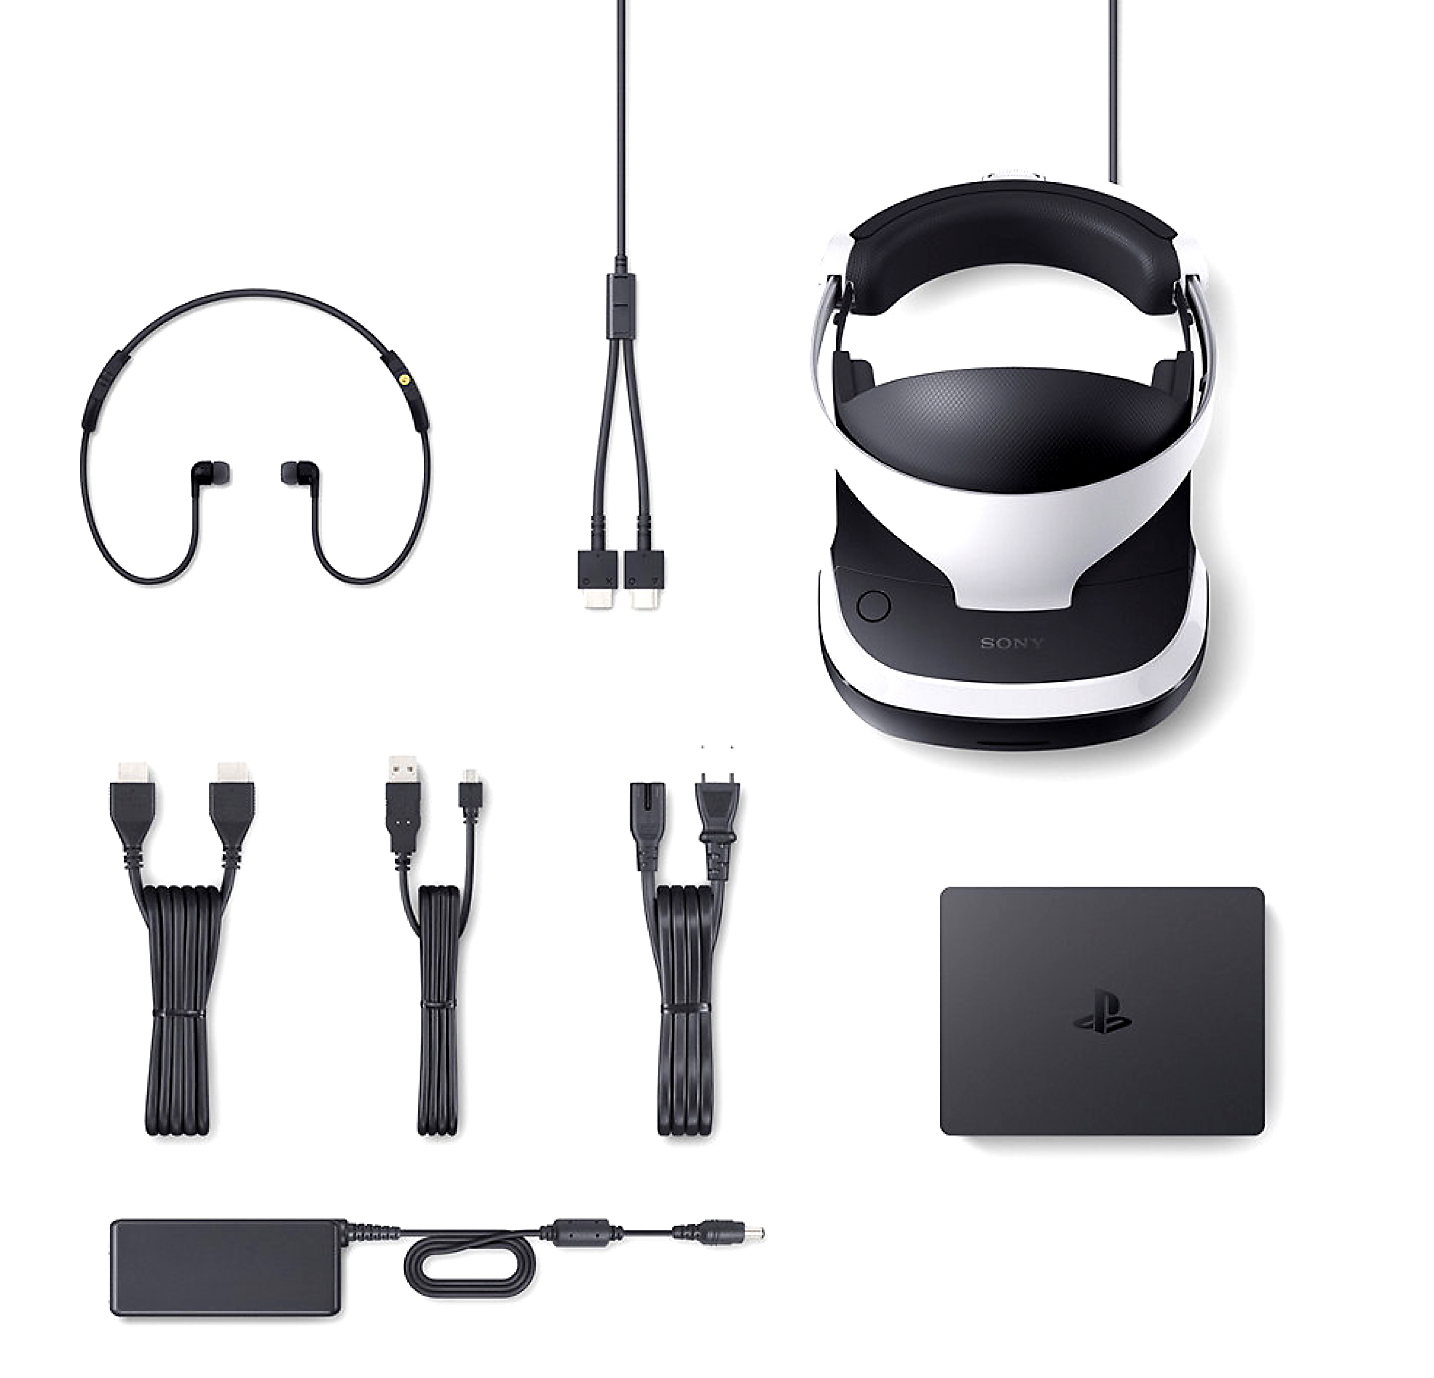 PlayStation VR hardware